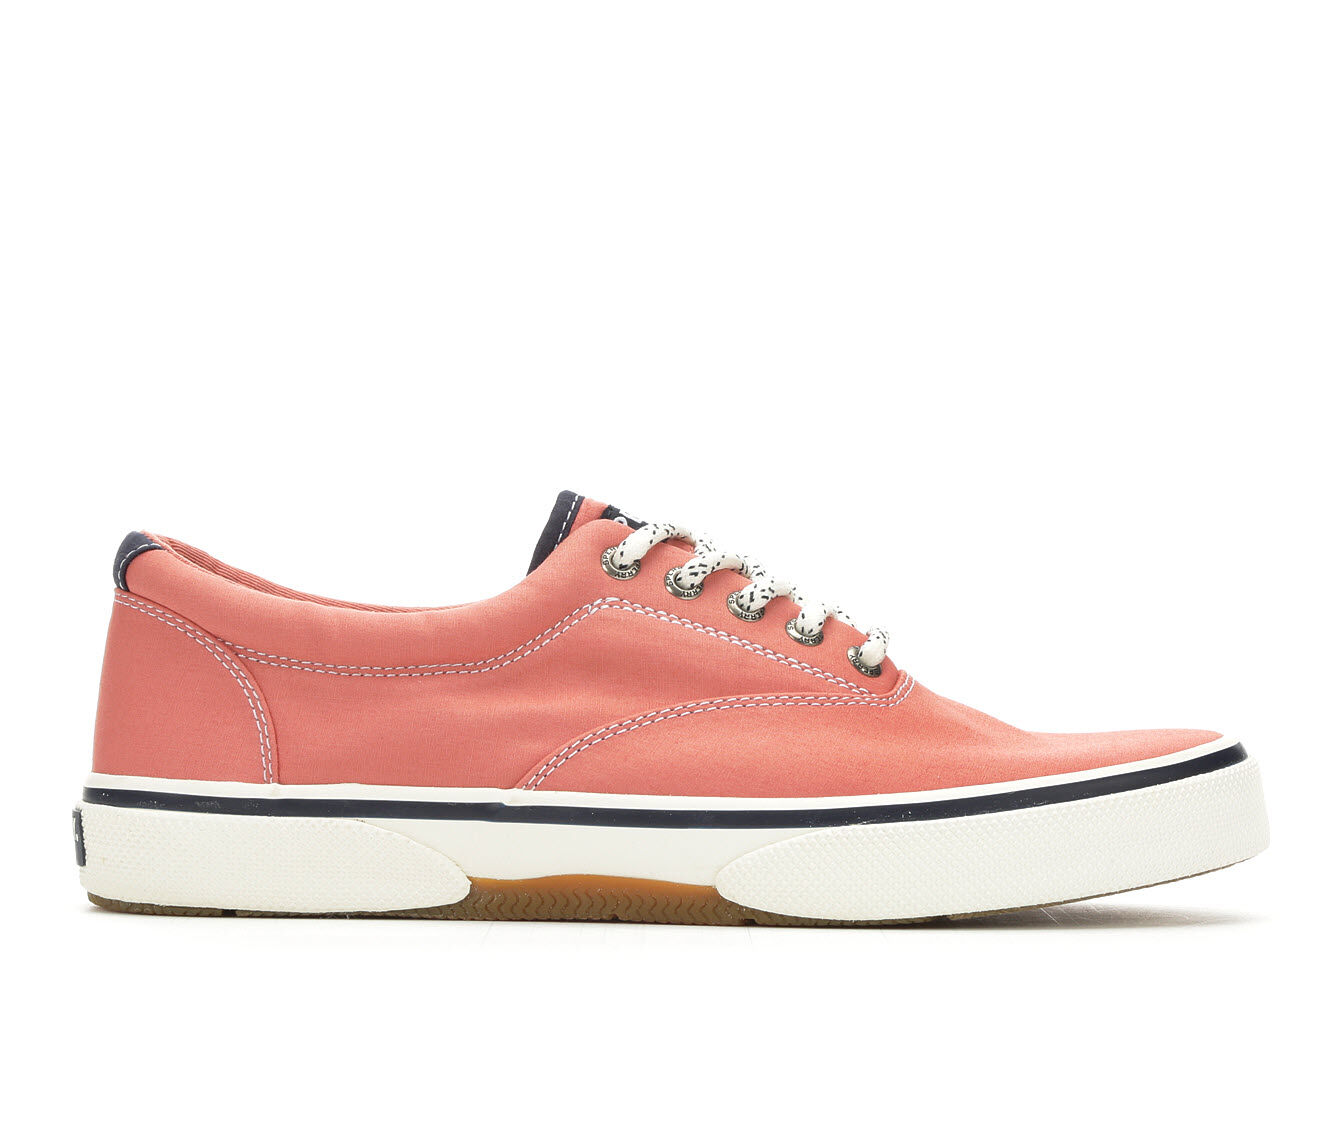 Men's Sperry Halyard Laceless Casual Shoes Nantucket Red